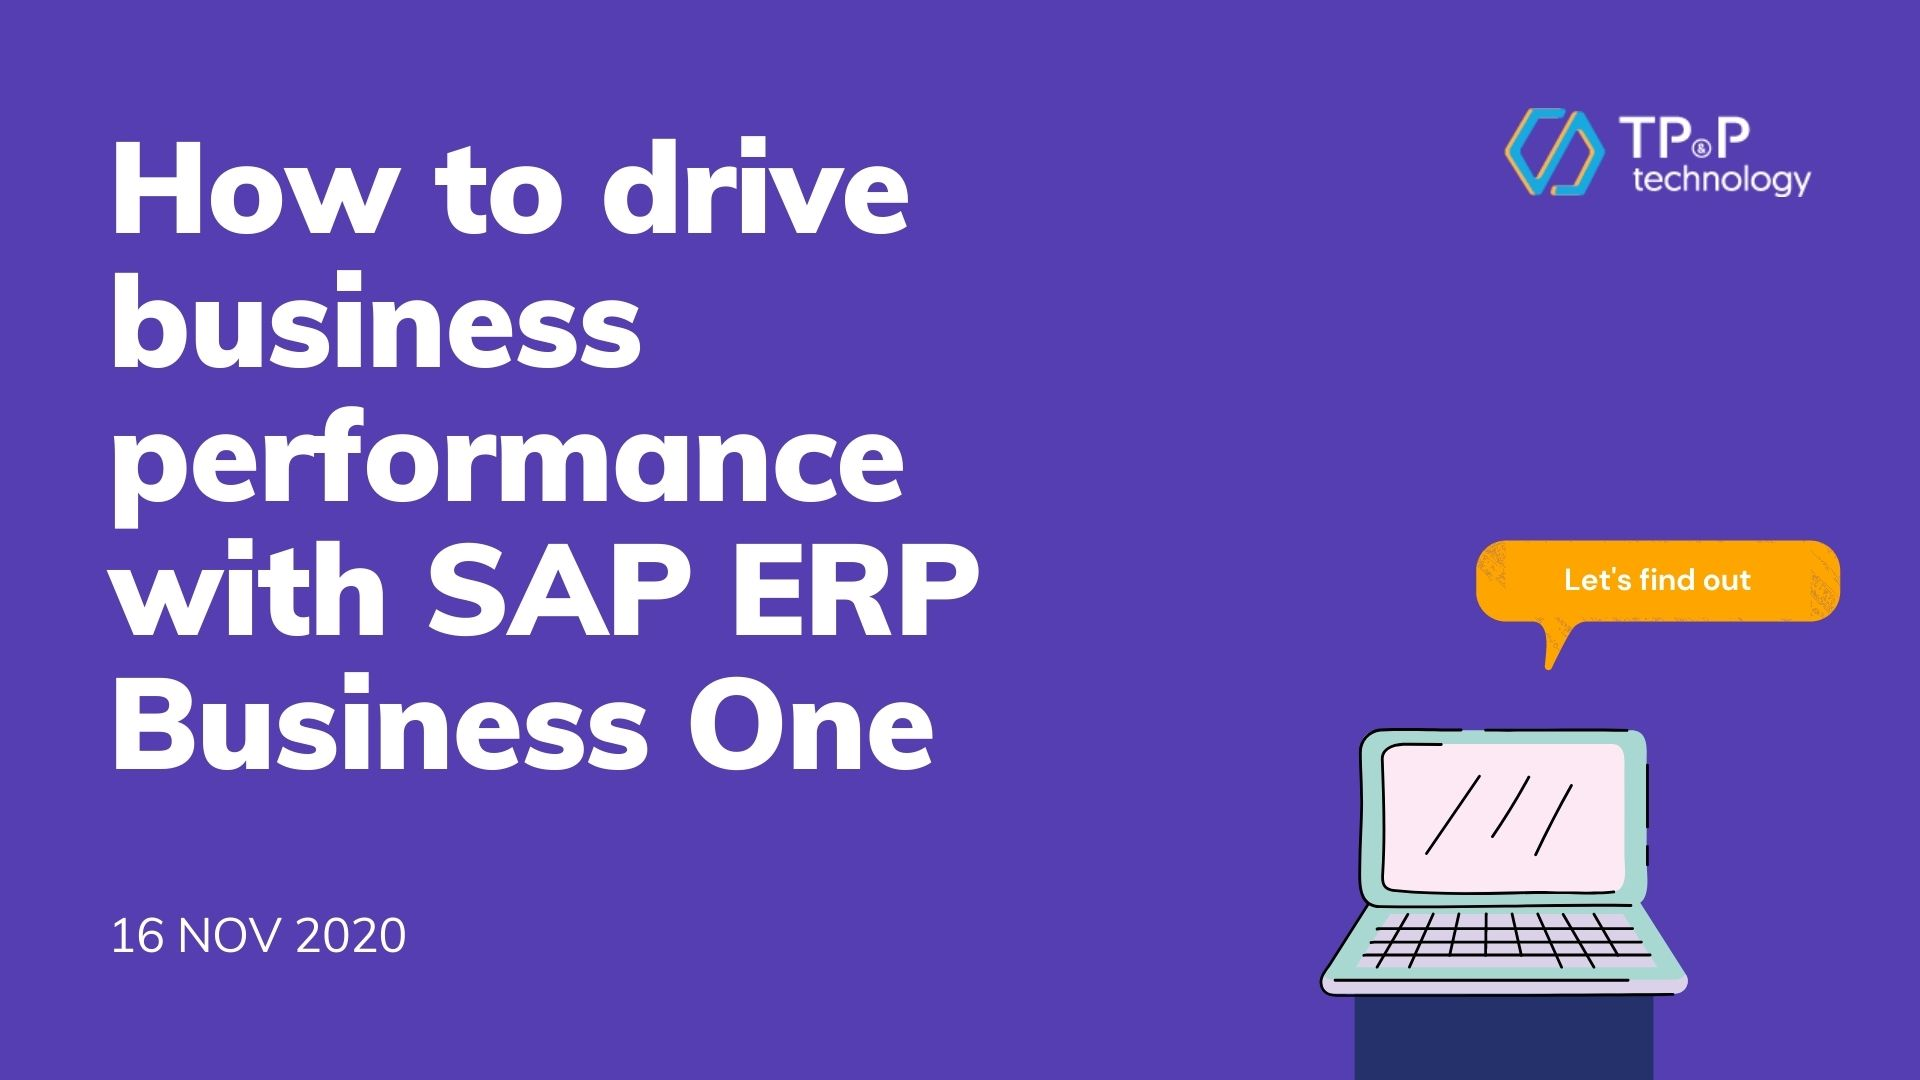 How to drive business performance with SAP ERP Business One